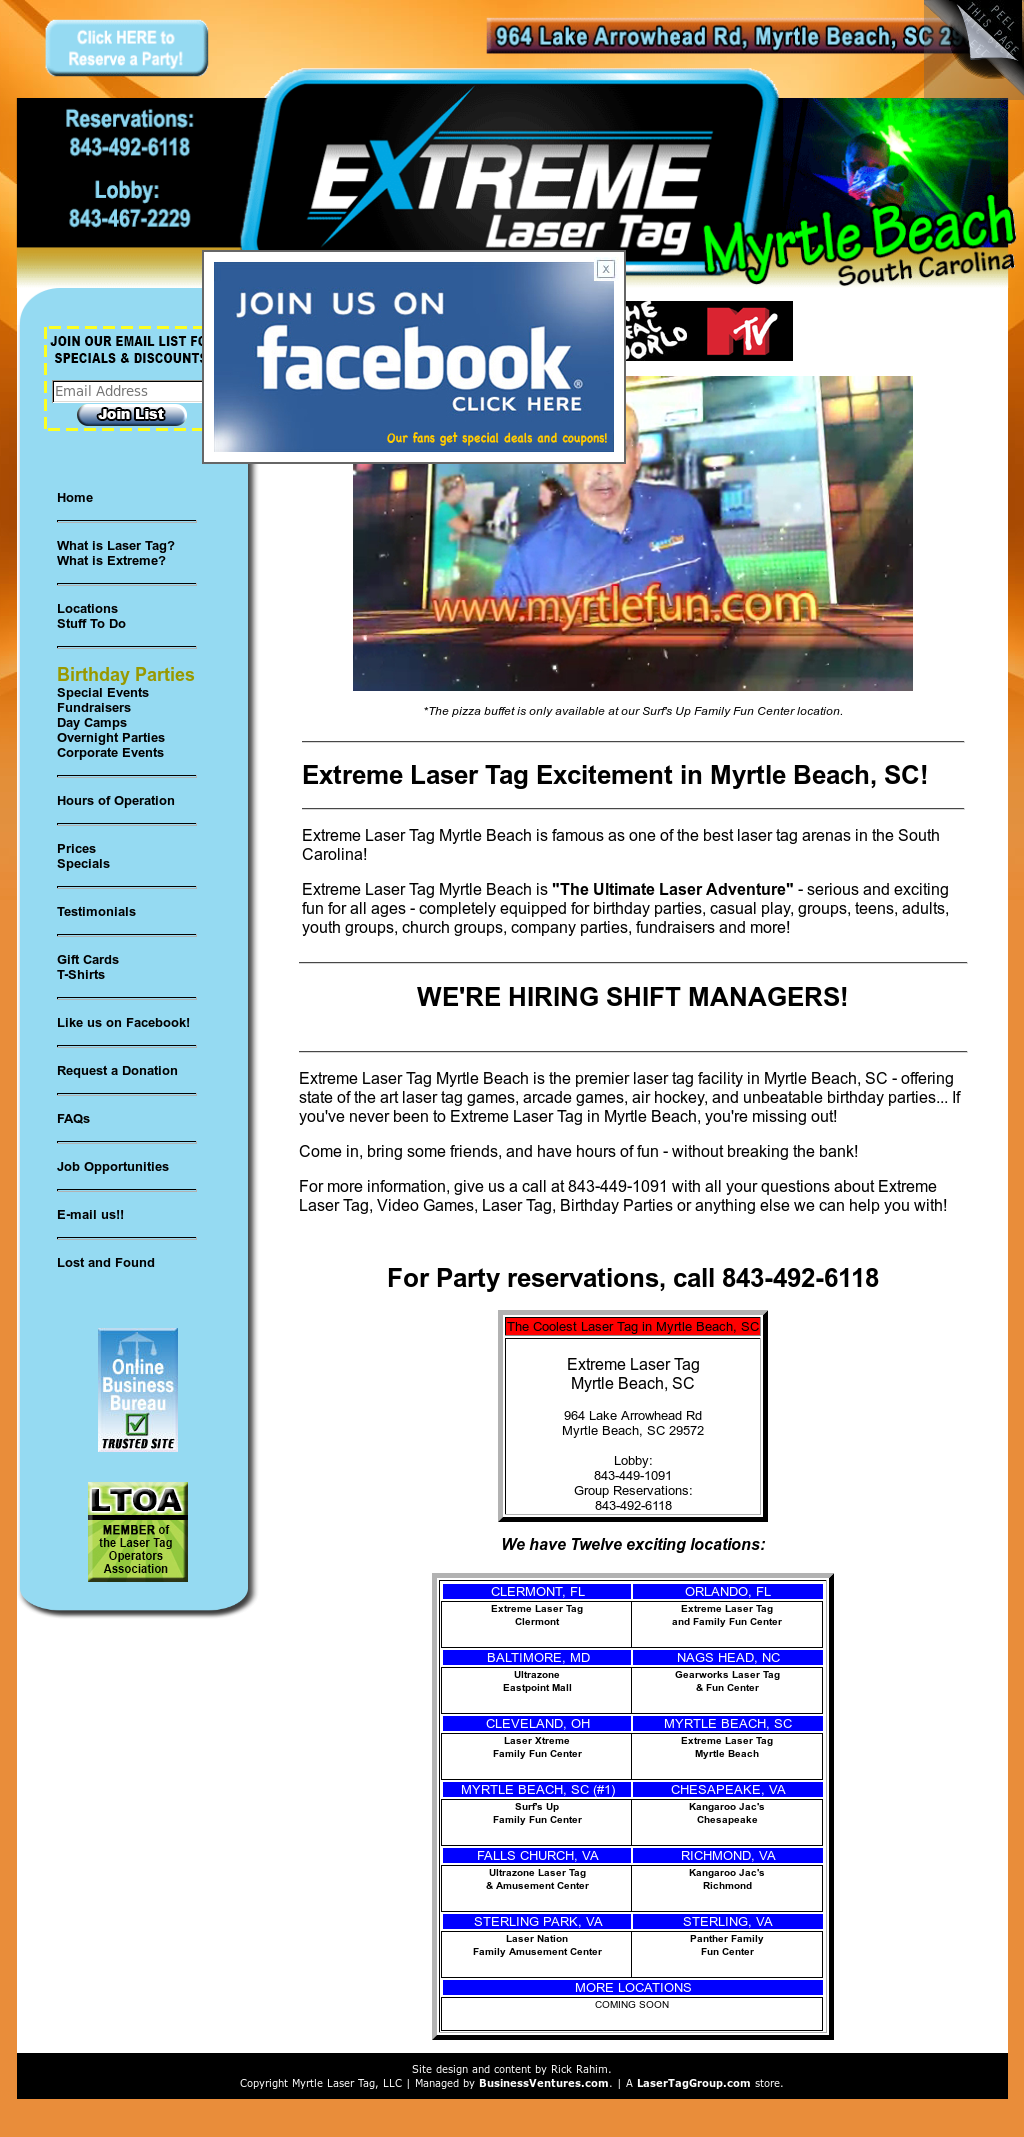 Extreme Laser Tag Myrtle Beach Competitors, Revenue and